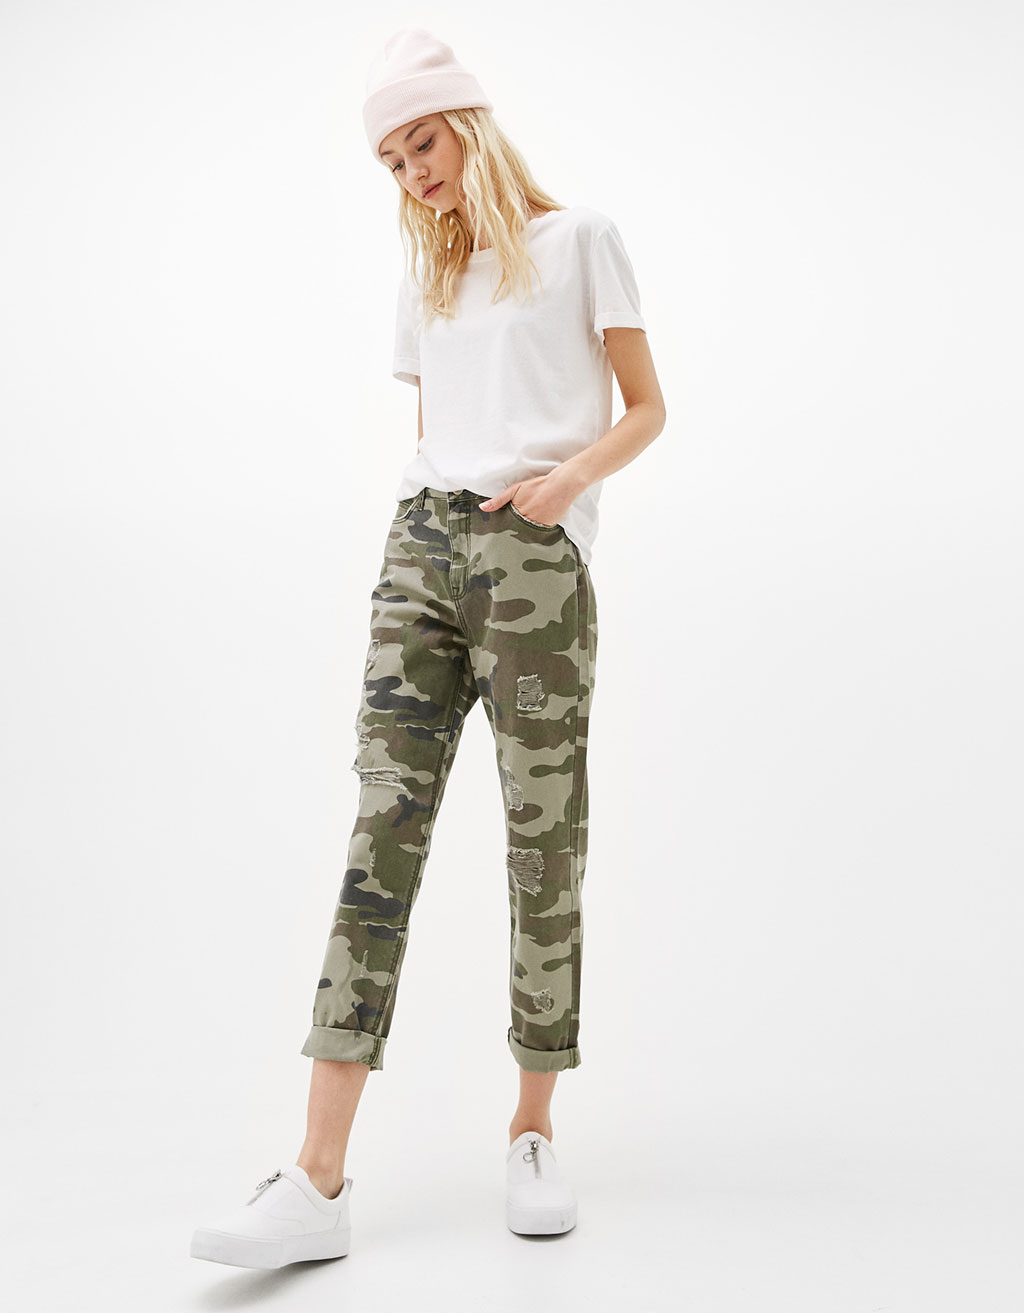 A2A (BLOBER)(MIX)PANTALON TIRO ALTO MOM FIT